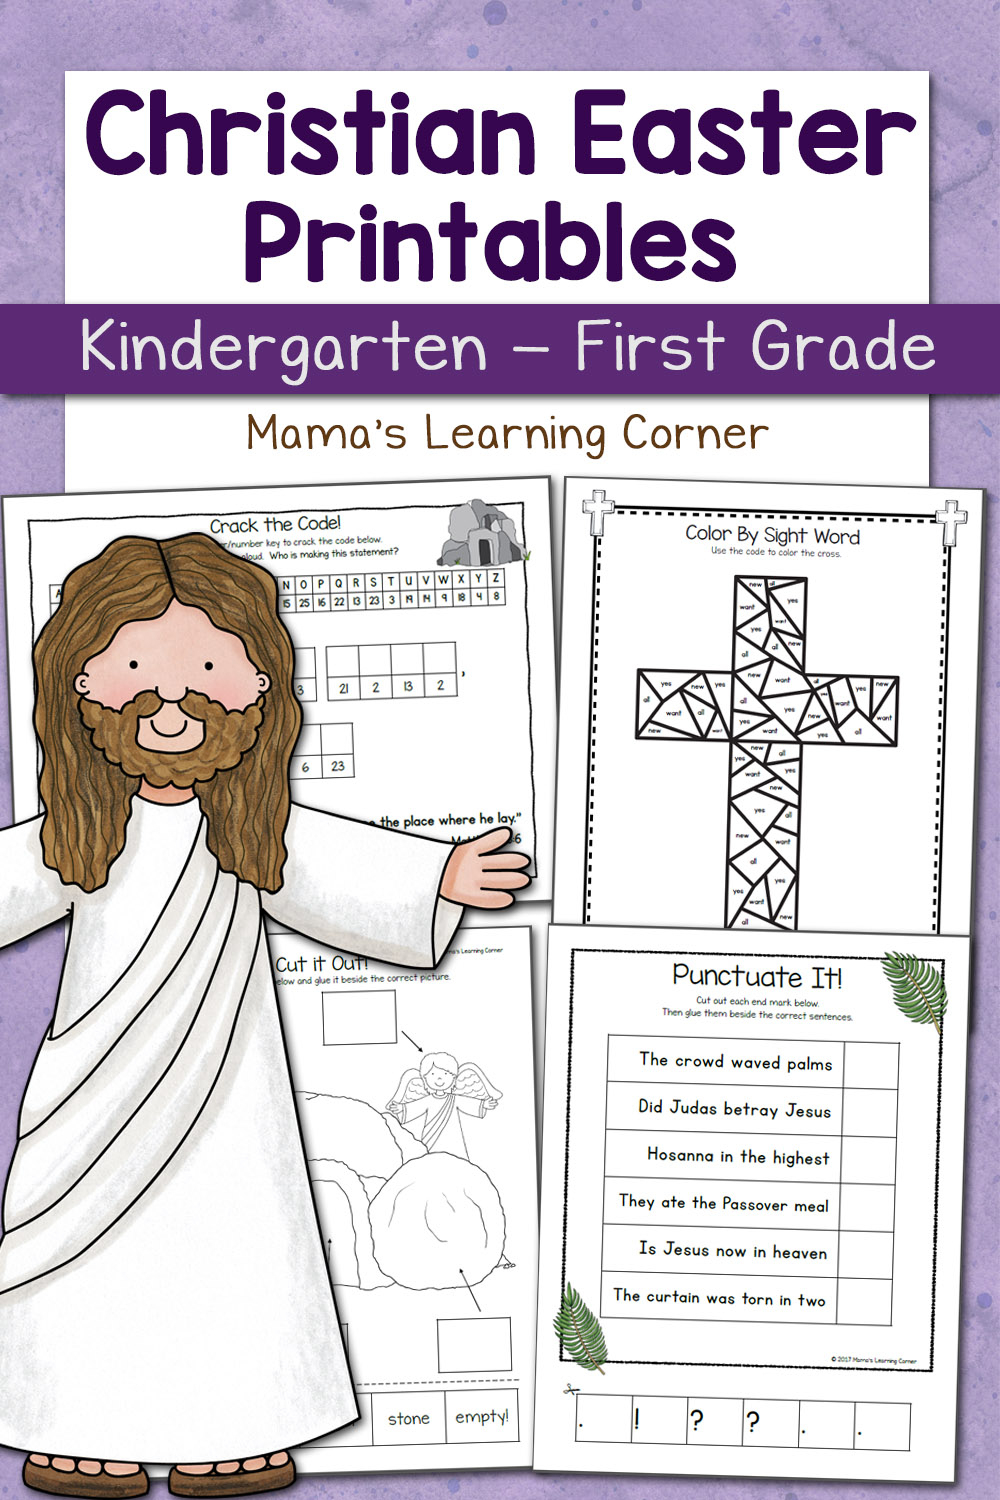 Huge List Of Easter Printables For Preschool To 2Nd Grade! - Mamas - Free Printable Easter Worksheets For 3Rd Grade